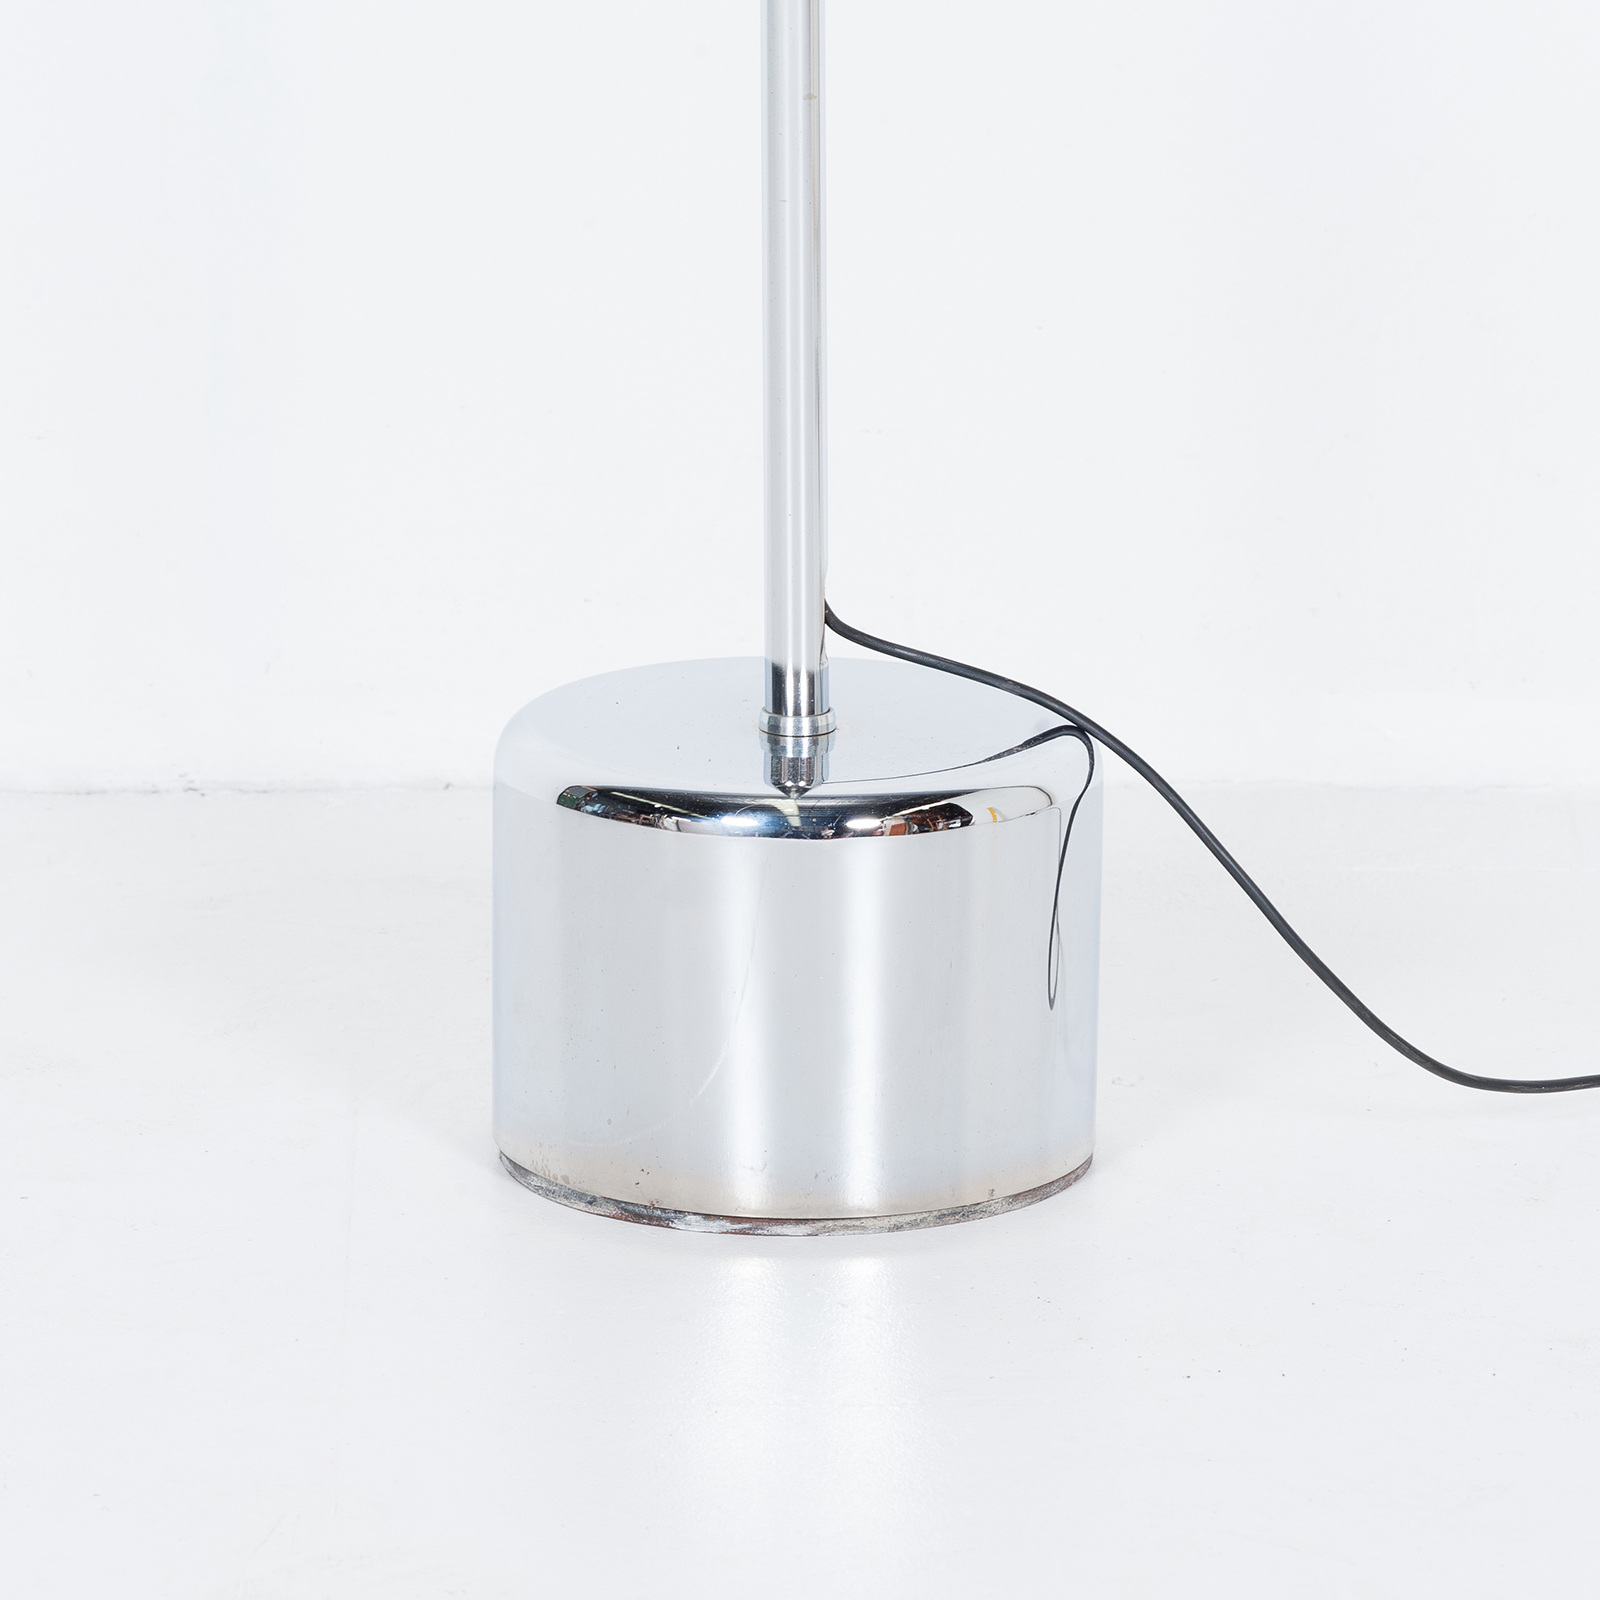 Arc Lamp By Gepo, 1950s, The Netherlands 4